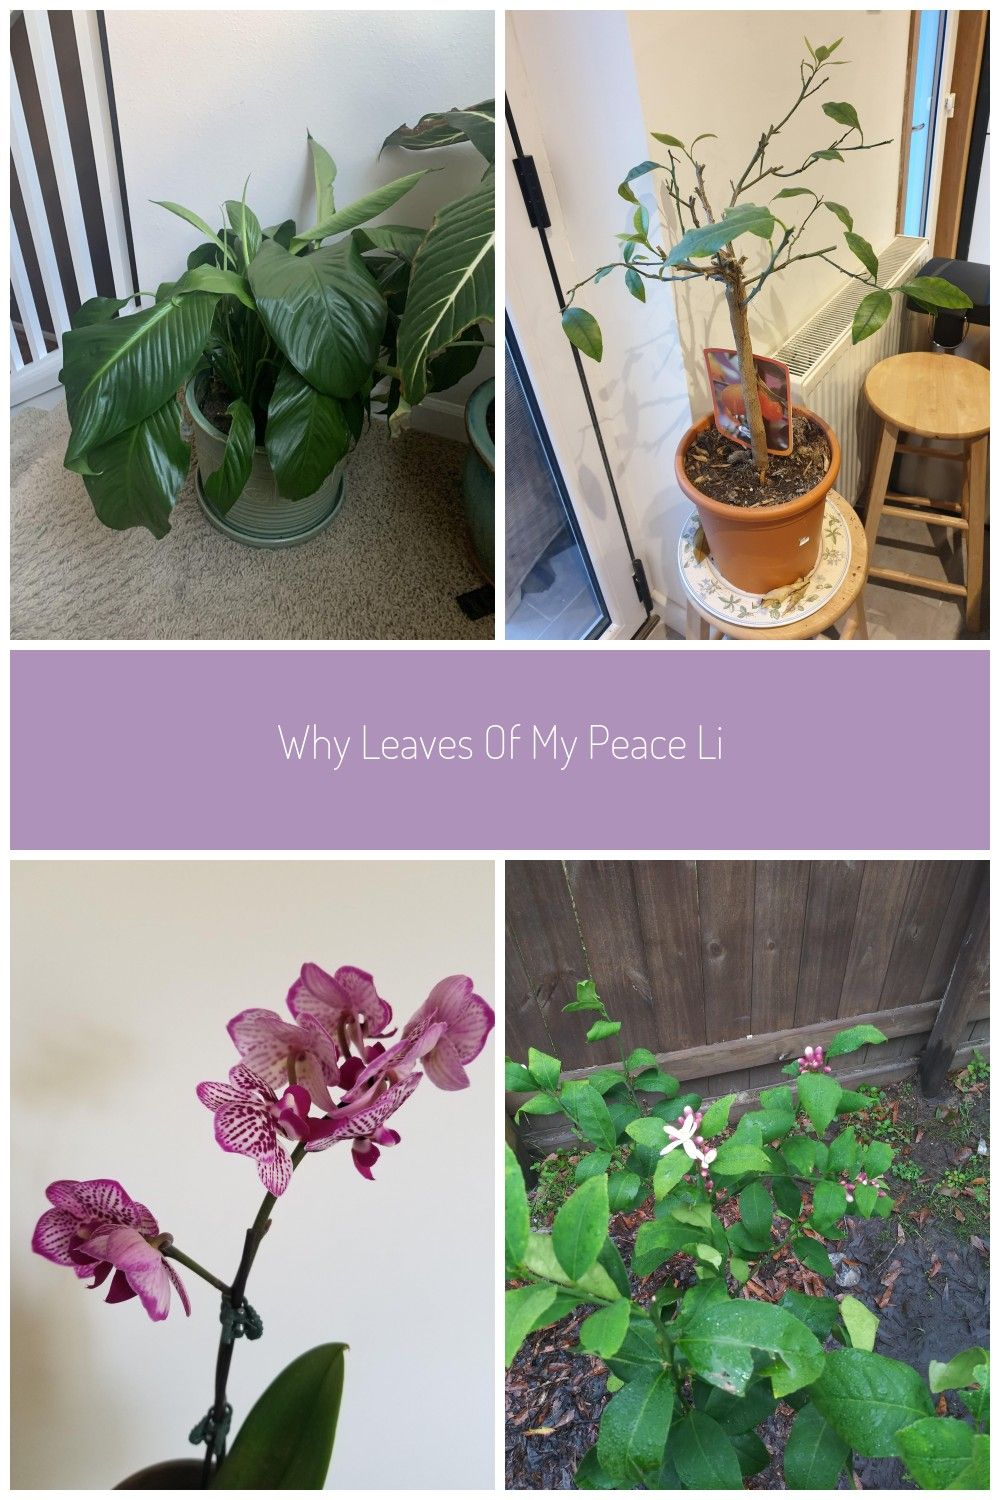 Why Leaves Of My Peace Lilly Plans Are Drooping Gardening Garden Diy Home Flowers Roses Nature Lands In 2020